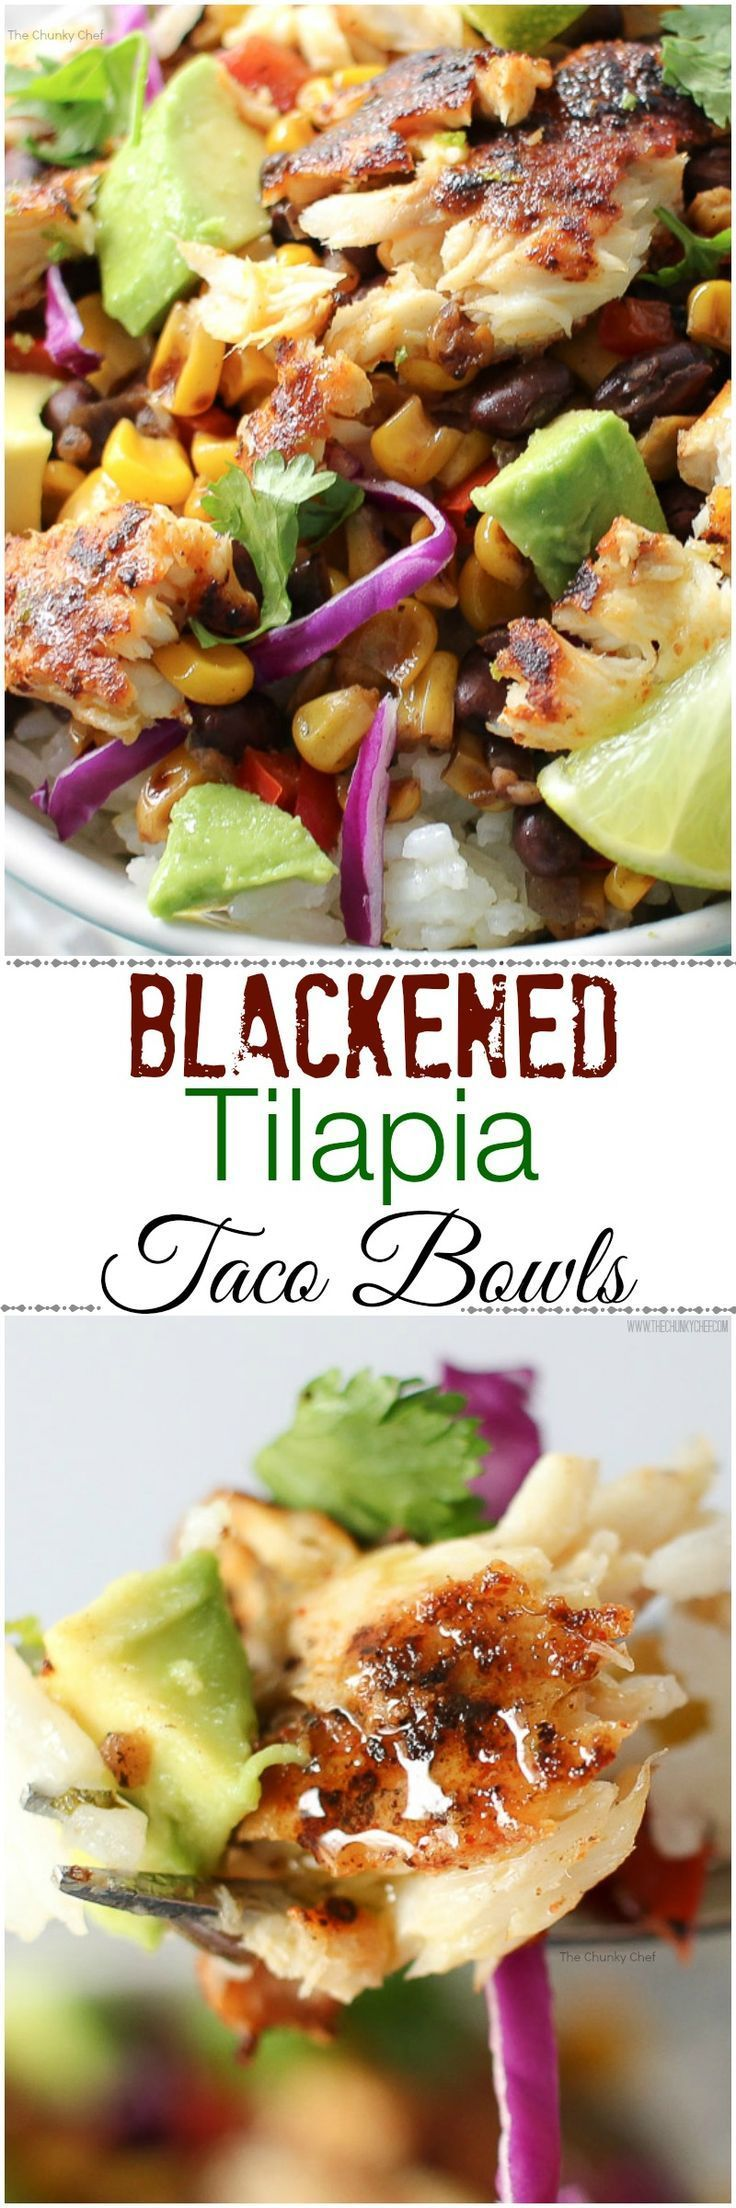 Blackened Tilapia Taco Bowls - Taco bowls get a healthy twist with the addition of spicy blackened tilapia filets, garnished with buttery avocados and a splash of fresh lime juice!